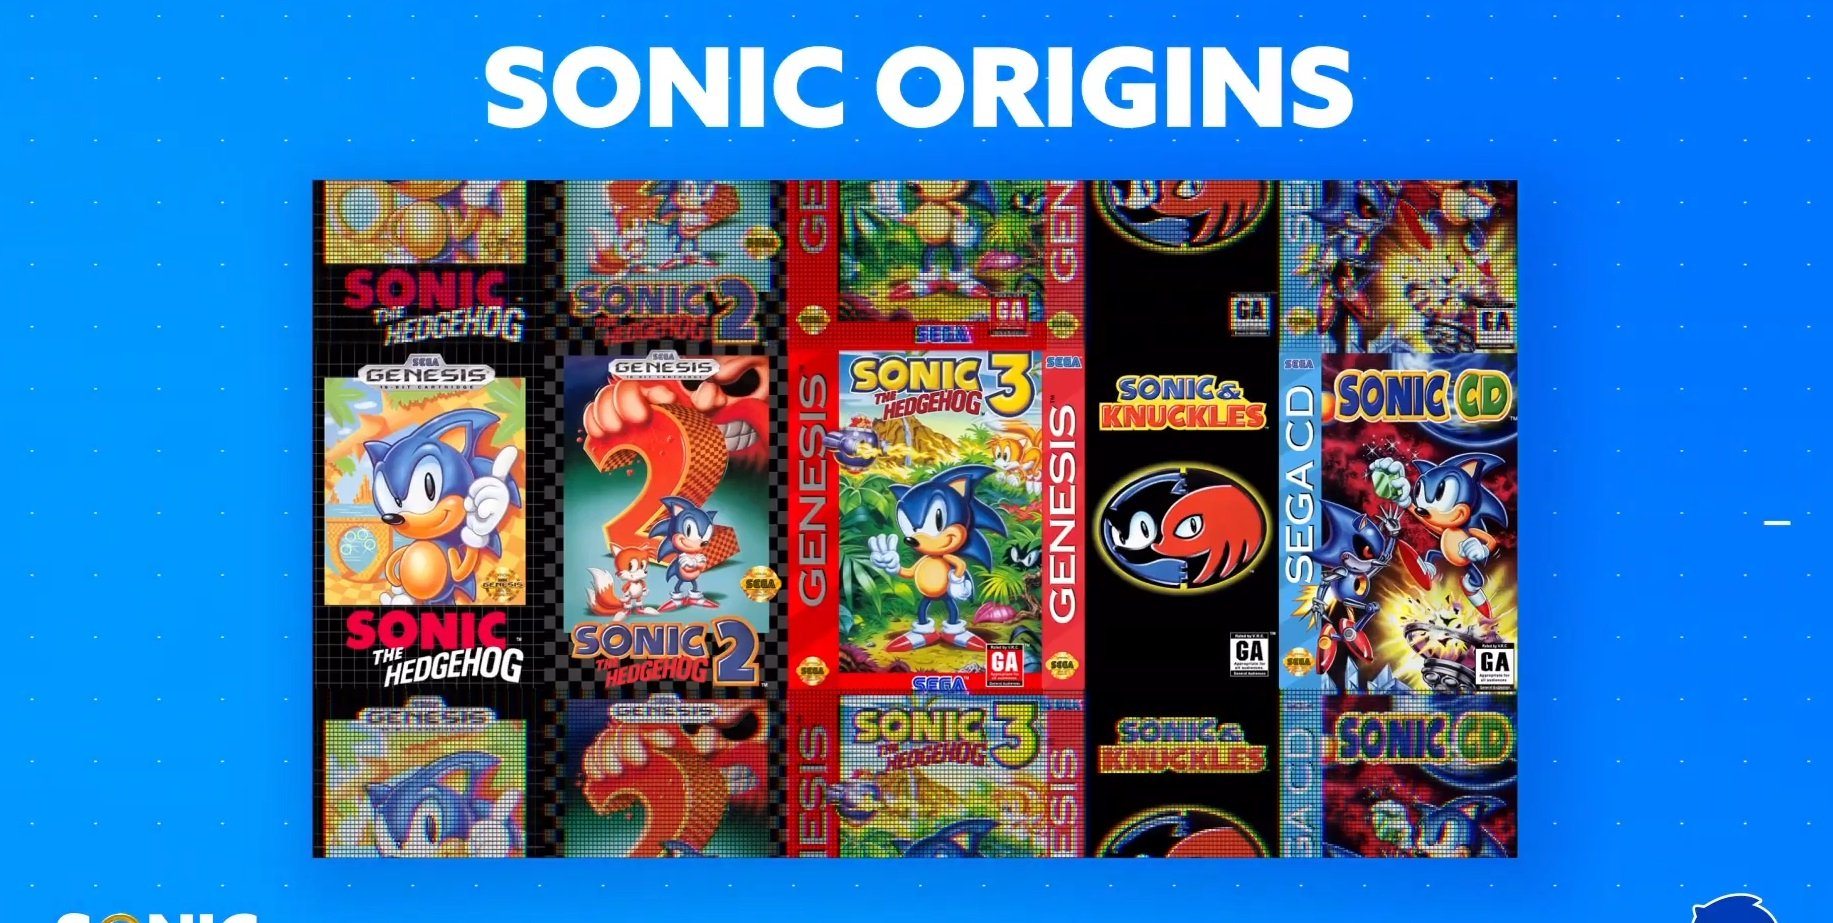 Sonic Origins is another compilation coming to new systems screenshot